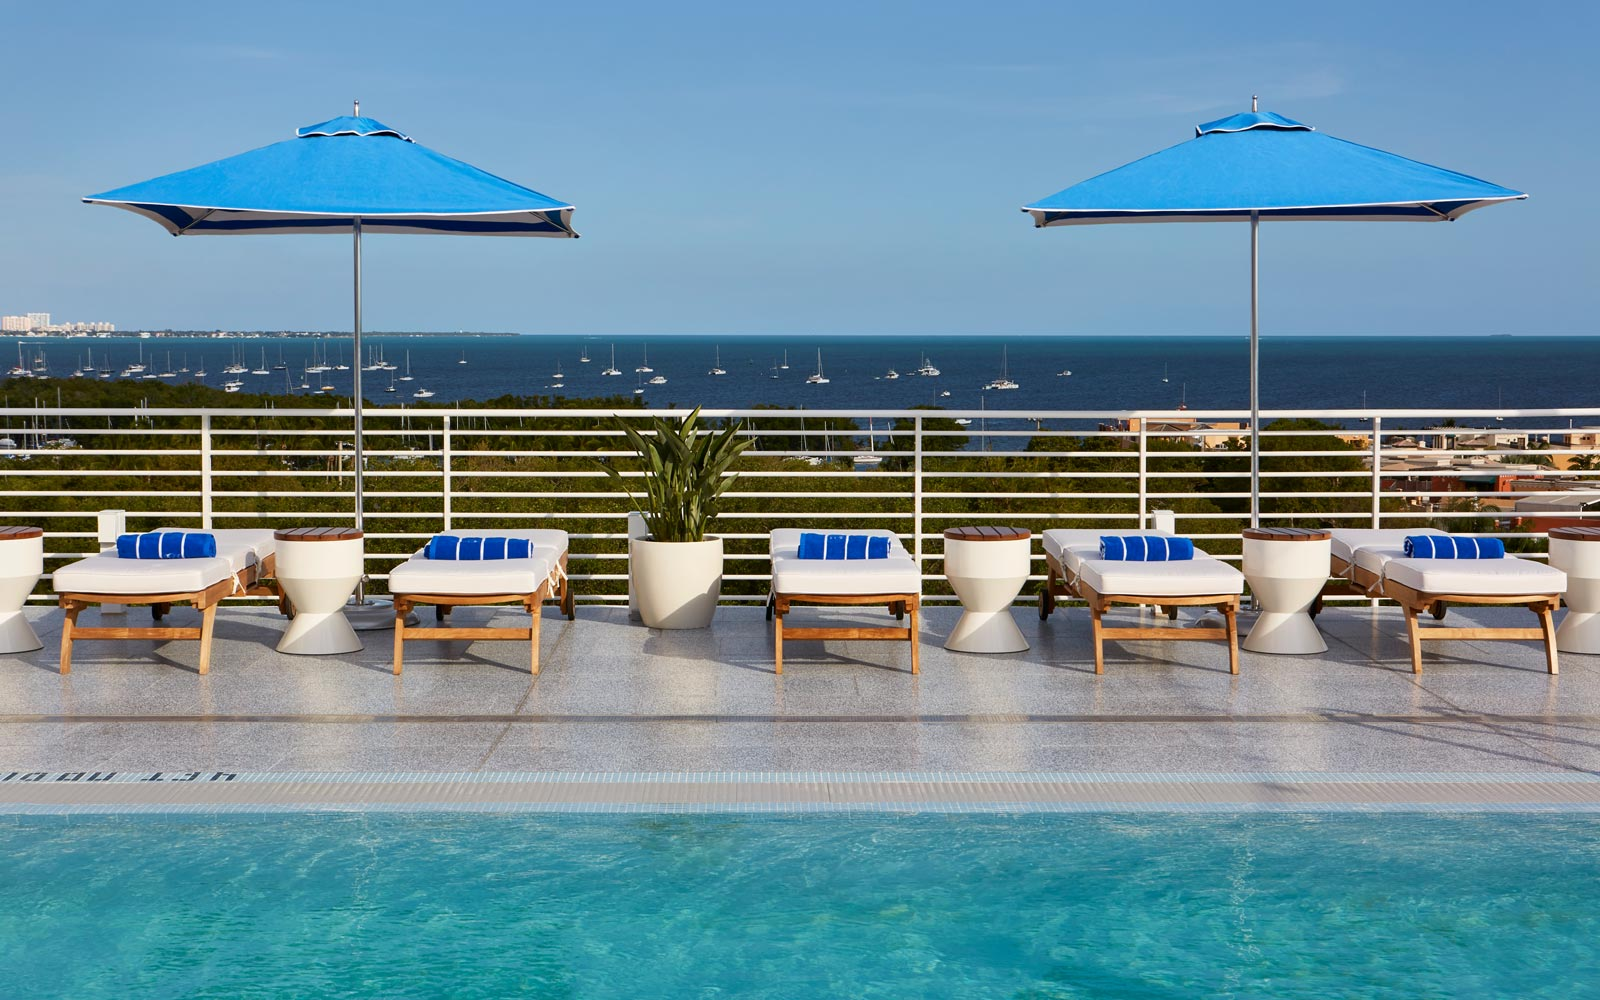 Miami's Mr. C Coconut Grove Hotel is Inspired by The Glamour of Life at Sea